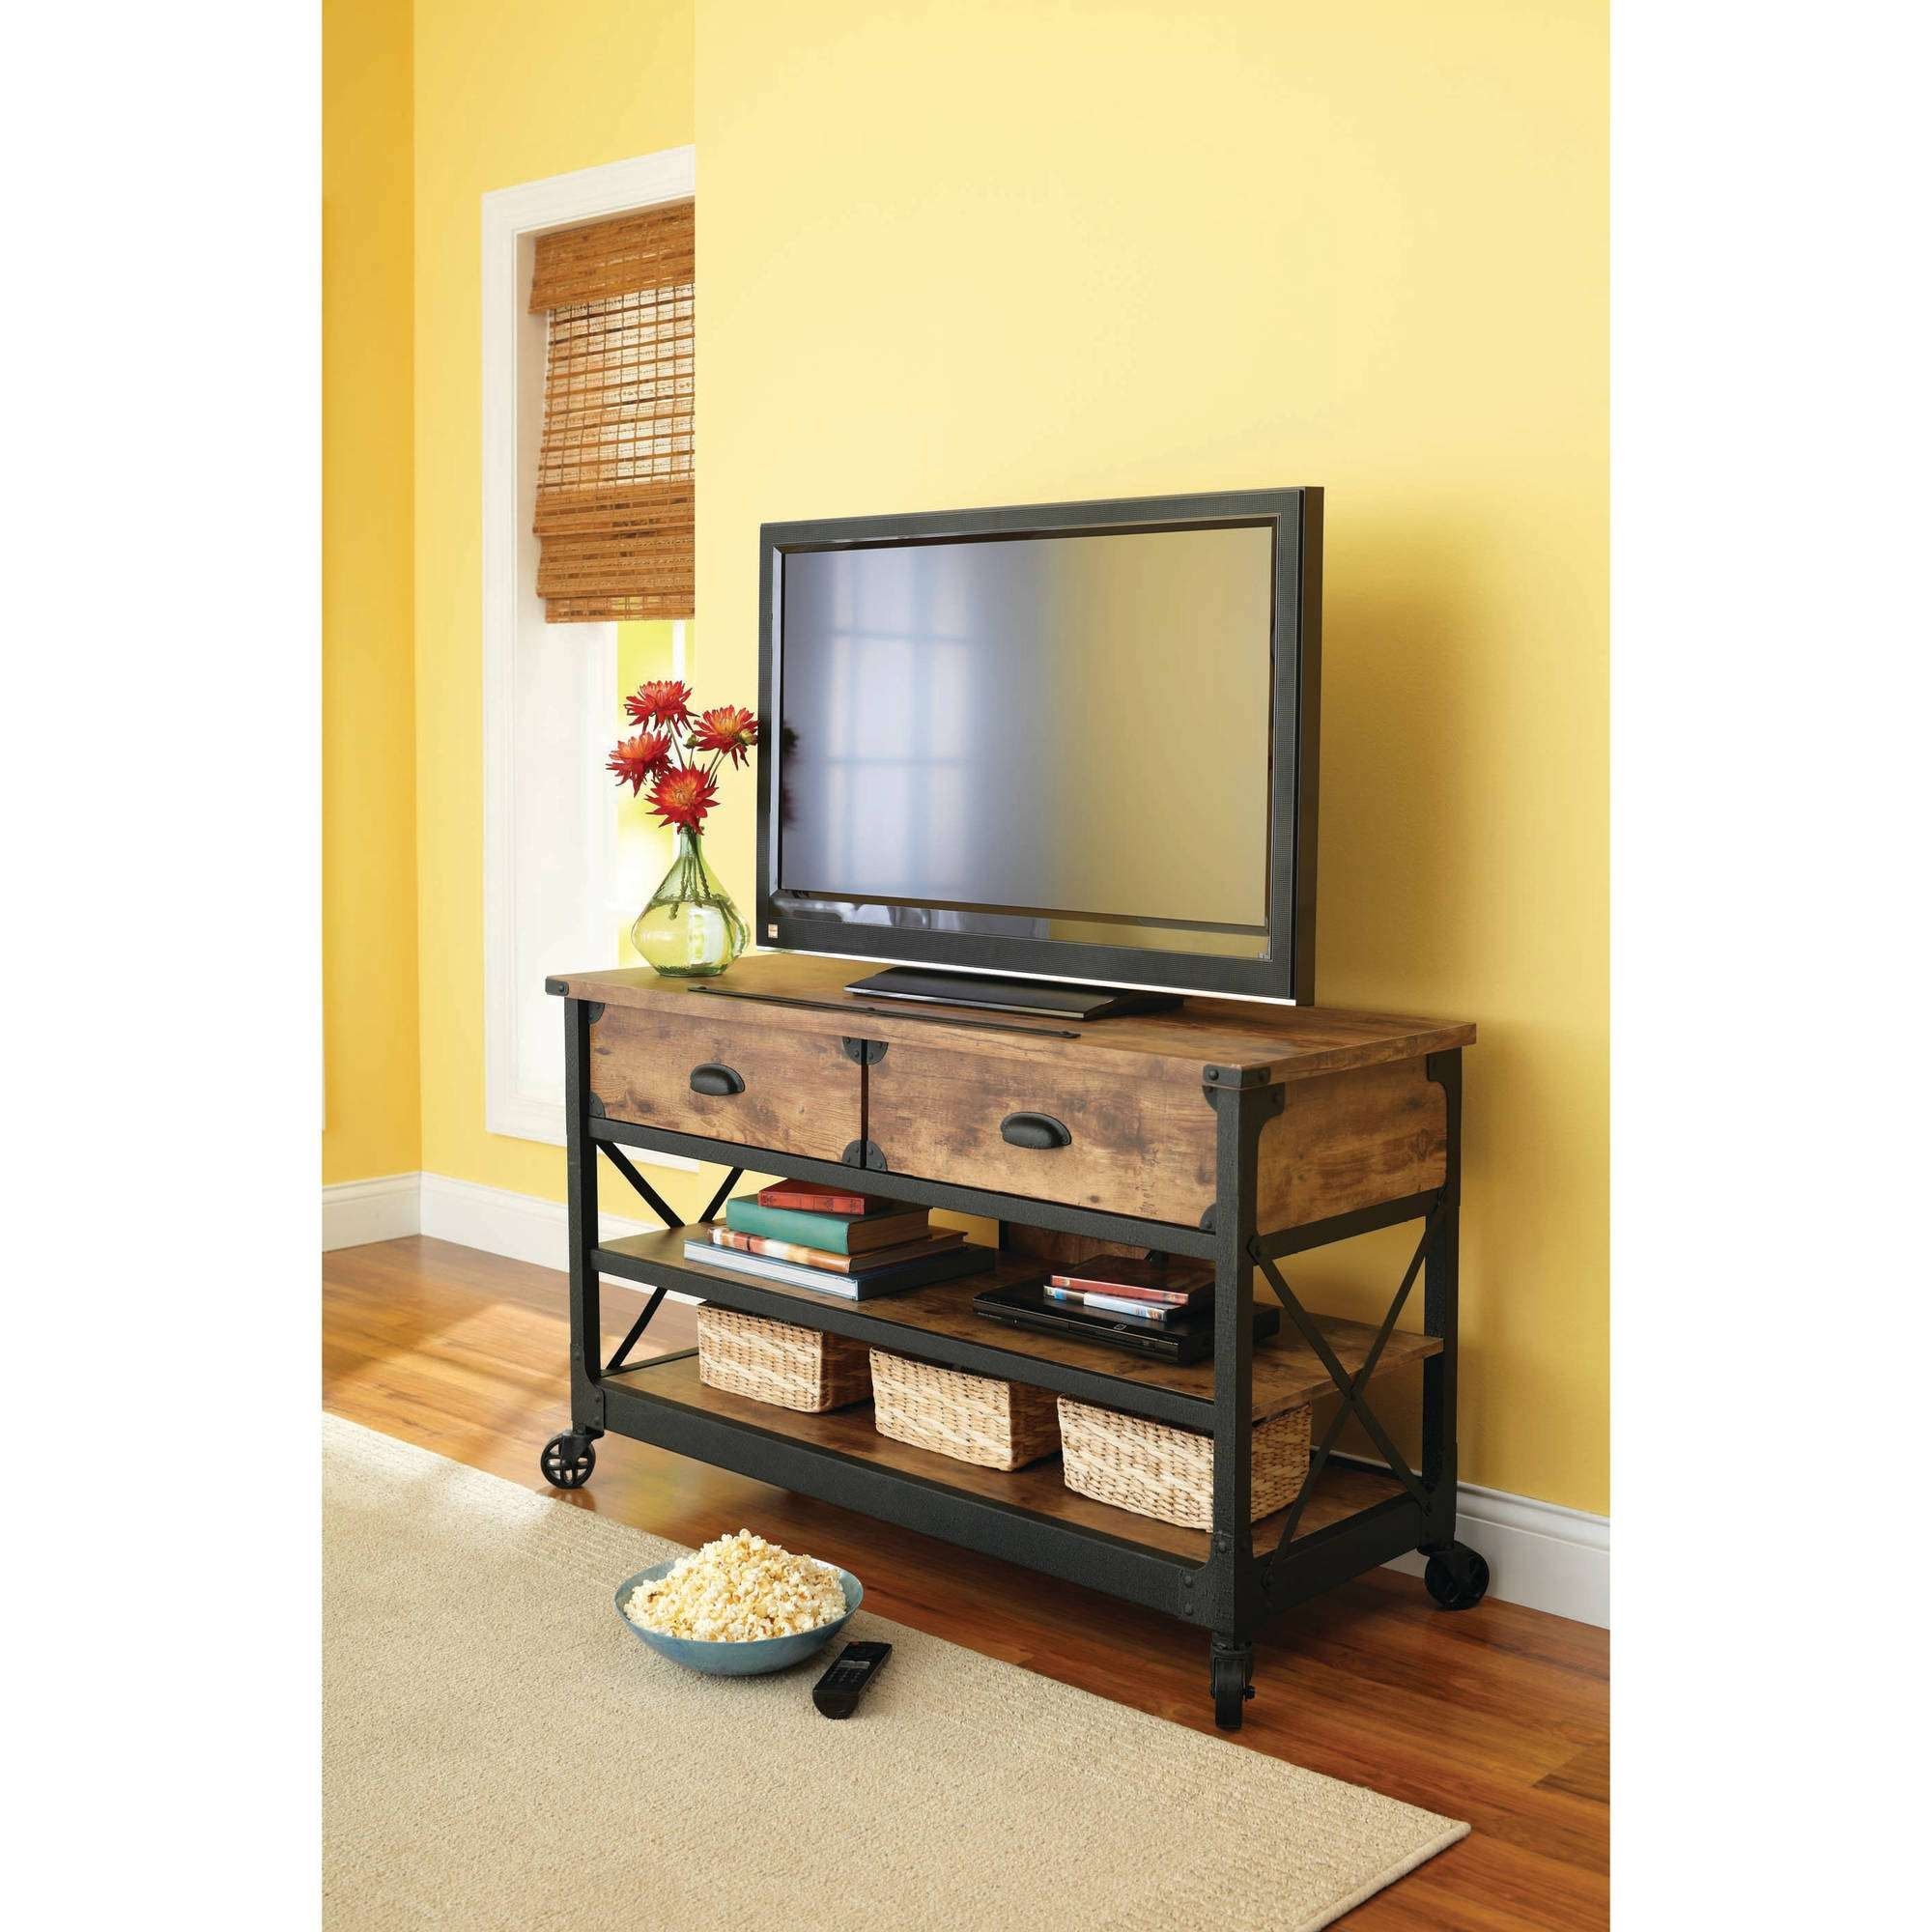 Tv : Country Tv Stands Pleasurable White French Country Tv Stands Pertaining To French Country Tv Stands (View 11 of 15)